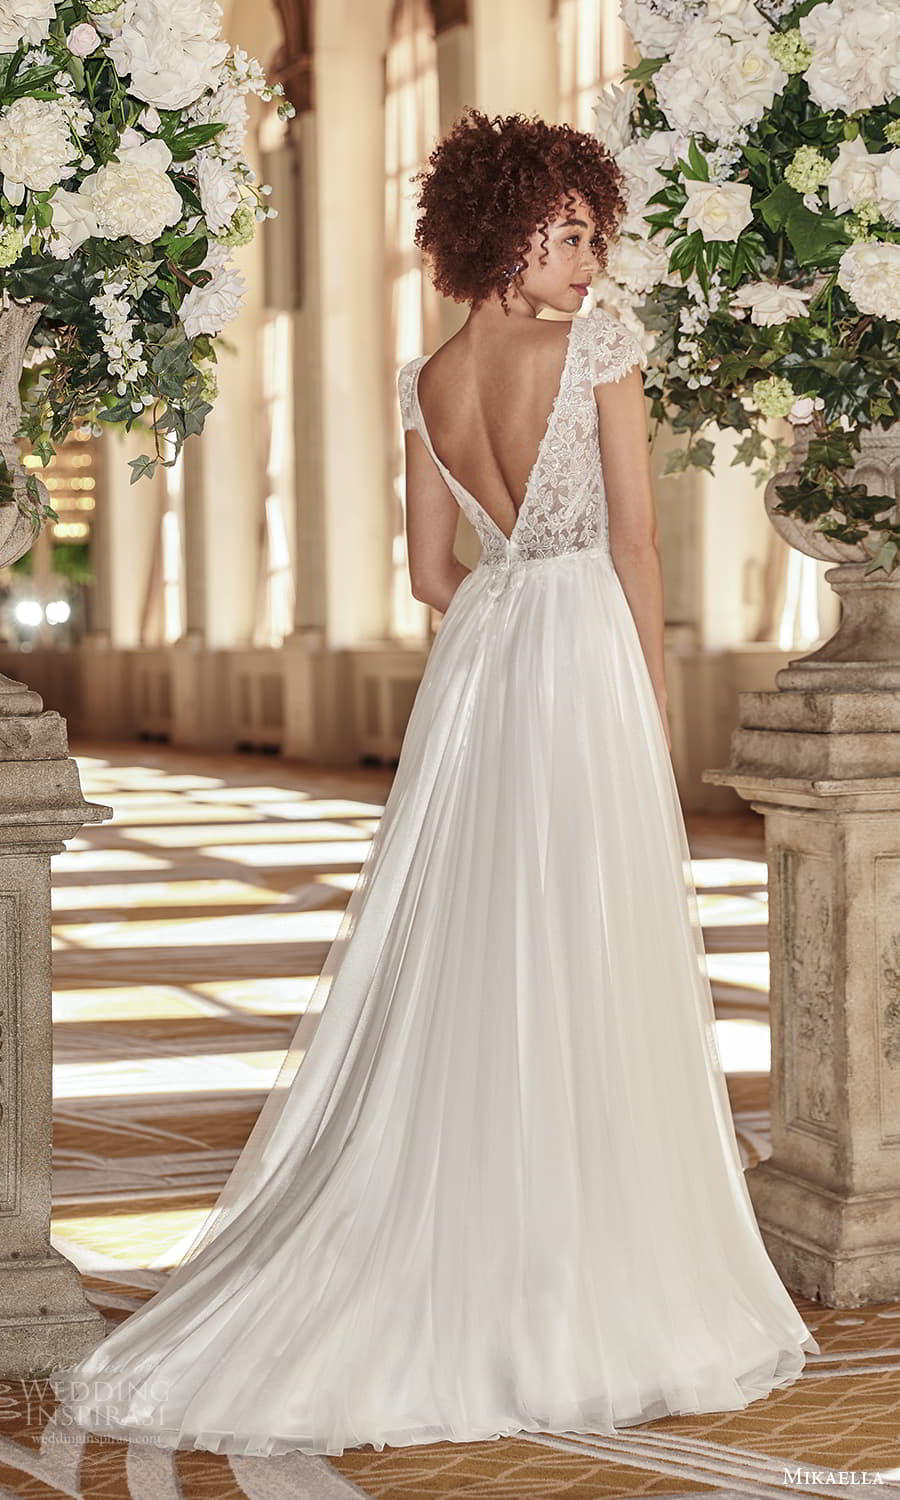 mikaella fall 2021 bridal cap sleeves v neckline lace bodice a line wedding dress chapel train slit skirt v back (4) bv